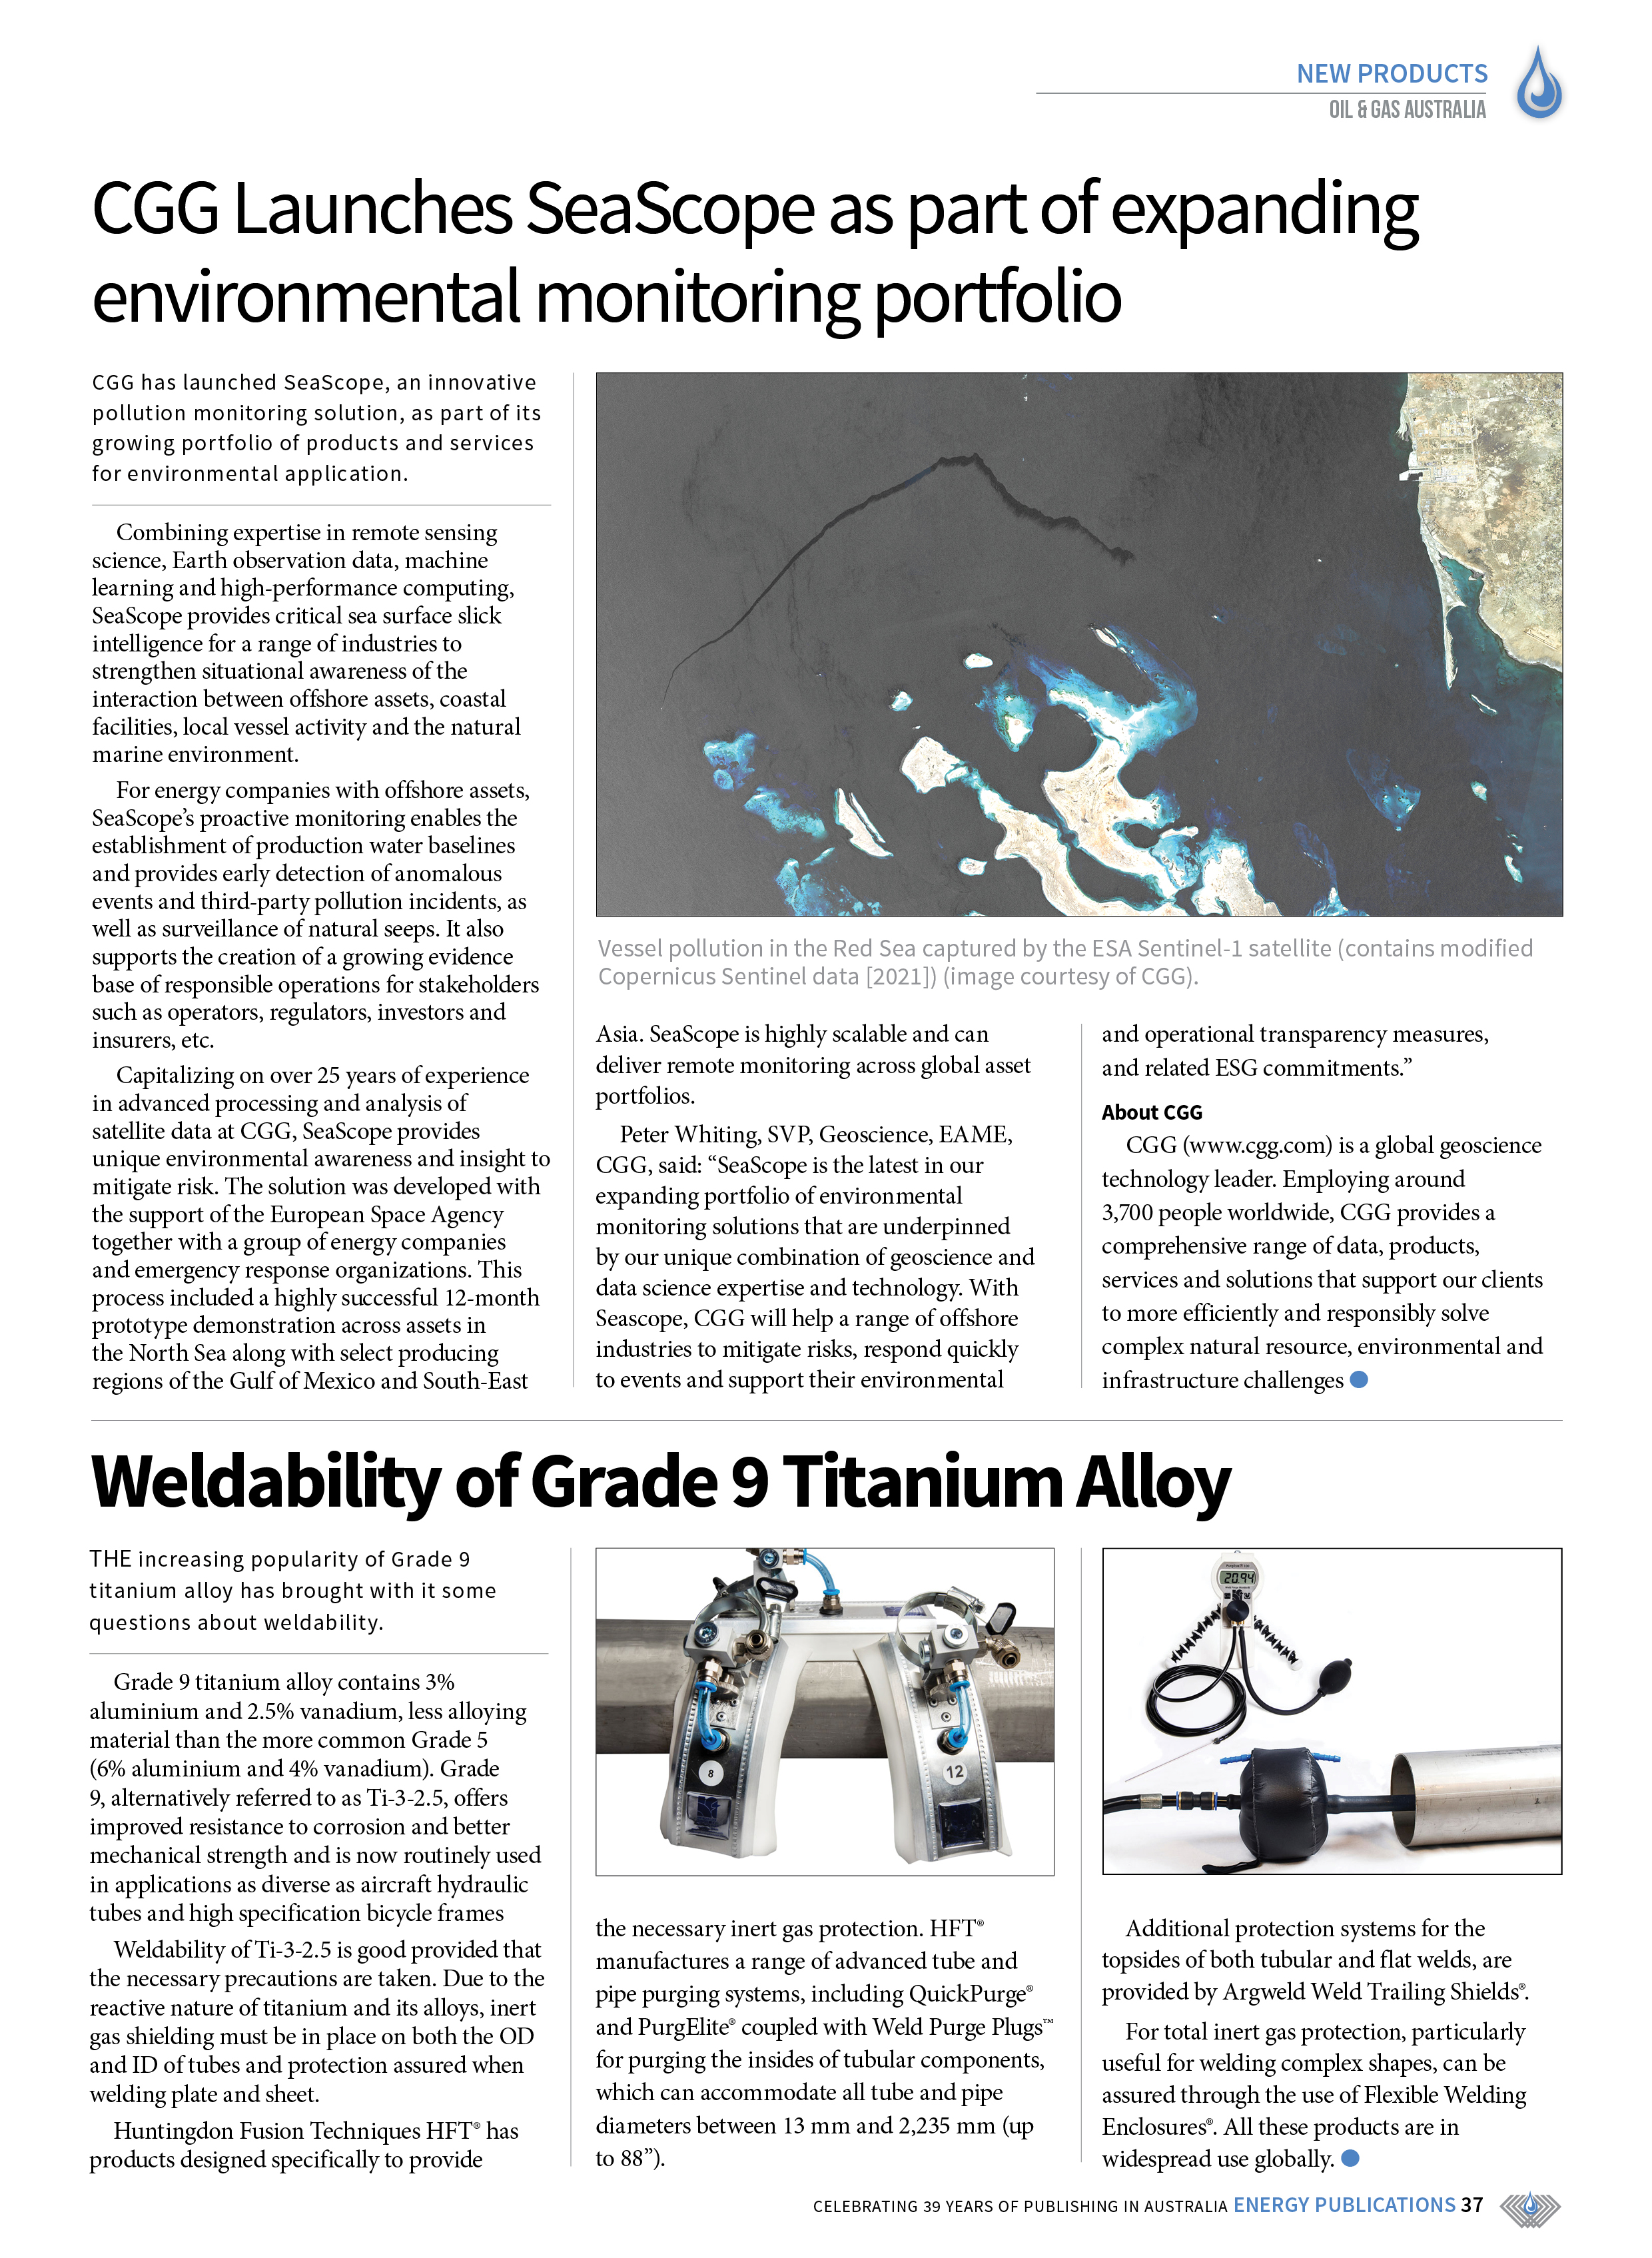 Oil & Gas Australia – May 2021 – Page 39